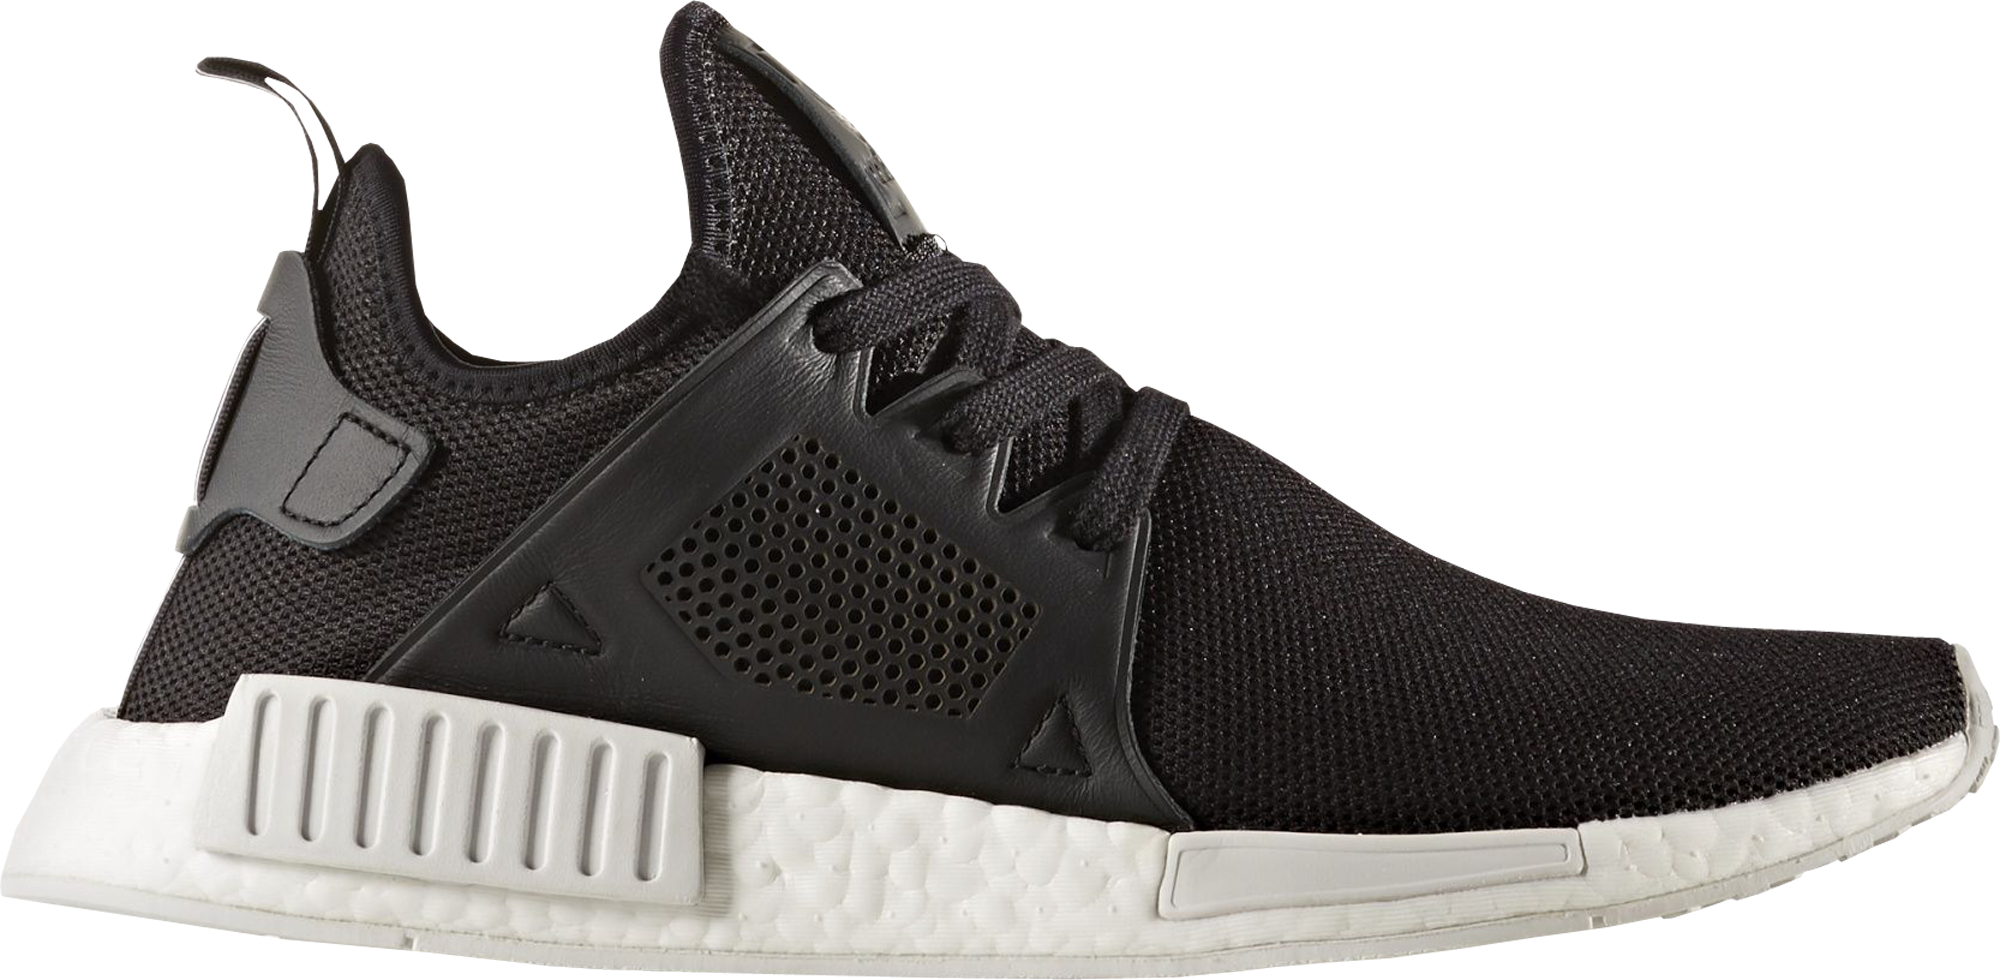 adidas NMD XR1 Black White